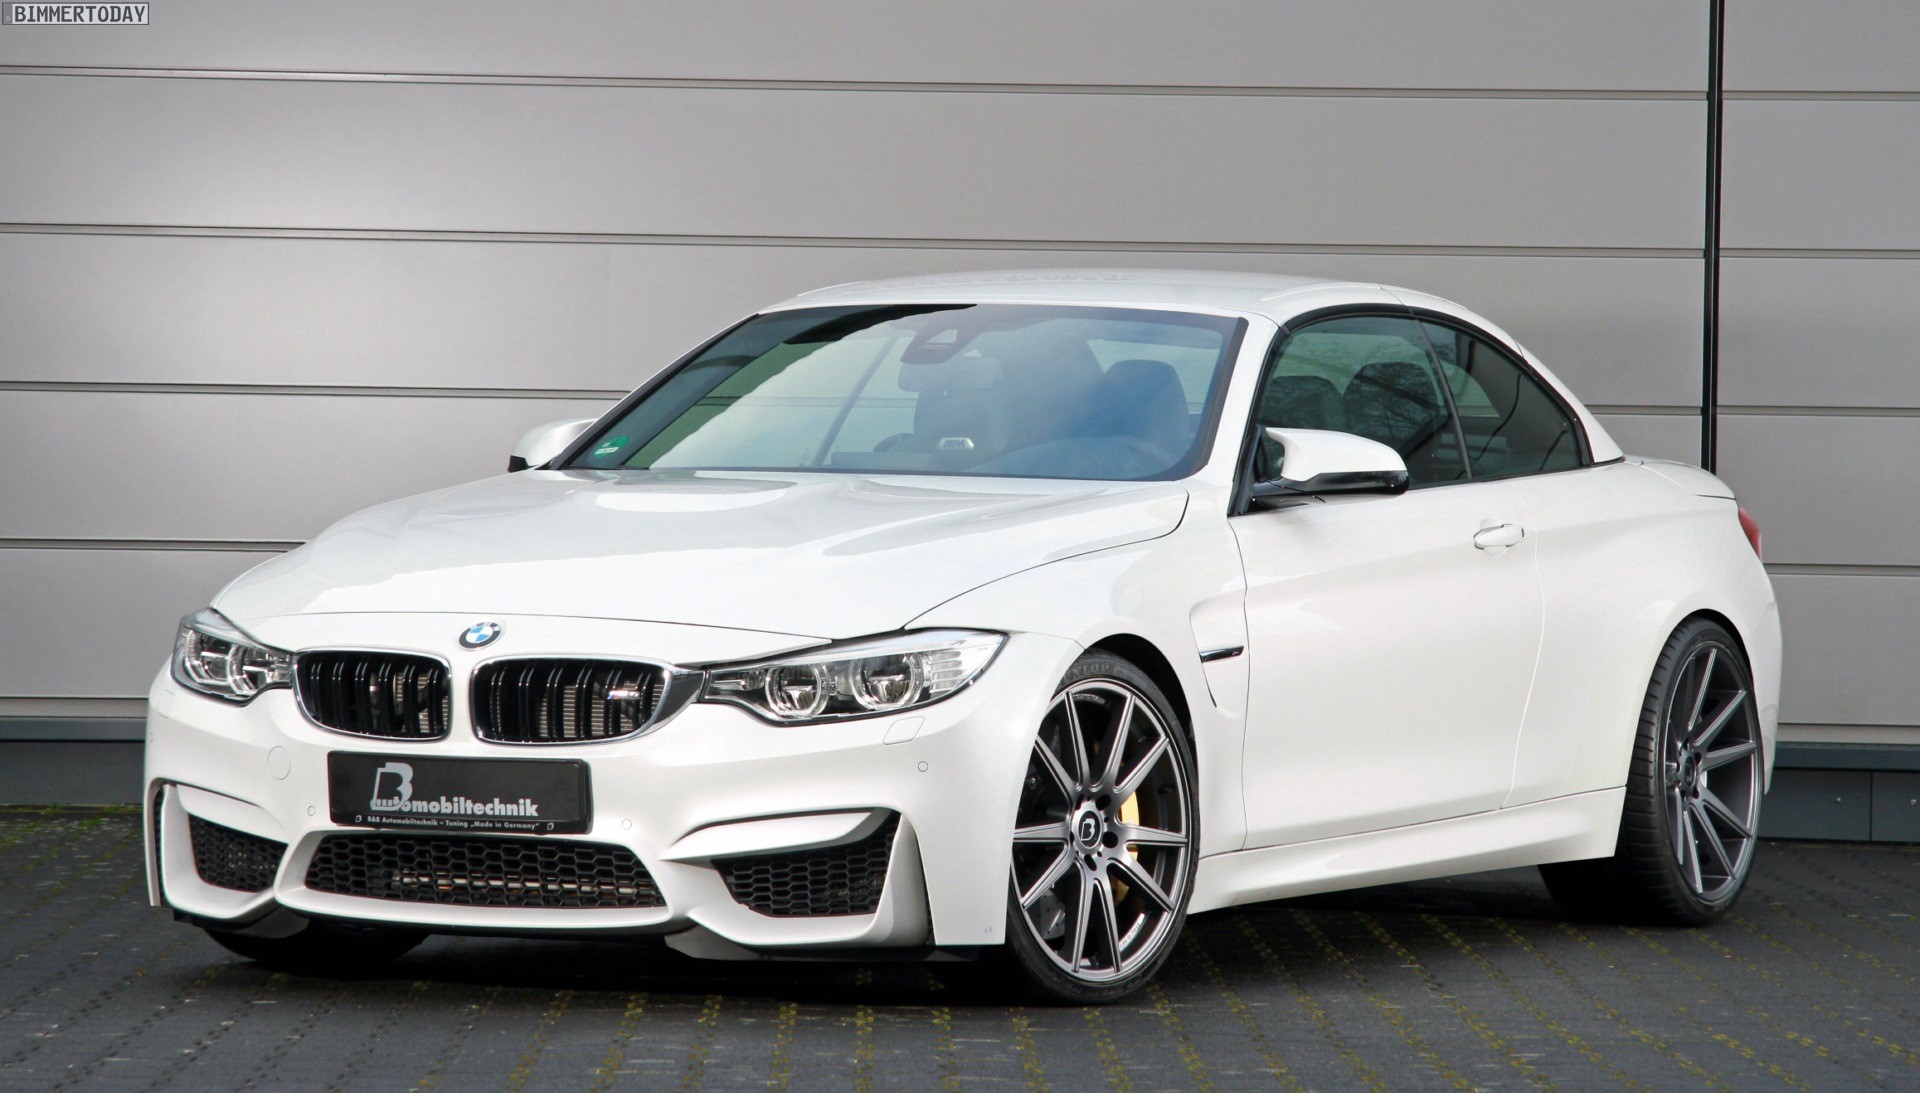 bmw m4 convertible by b b makes 580 horsepower. Black Bedroom Furniture Sets. Home Design Ideas